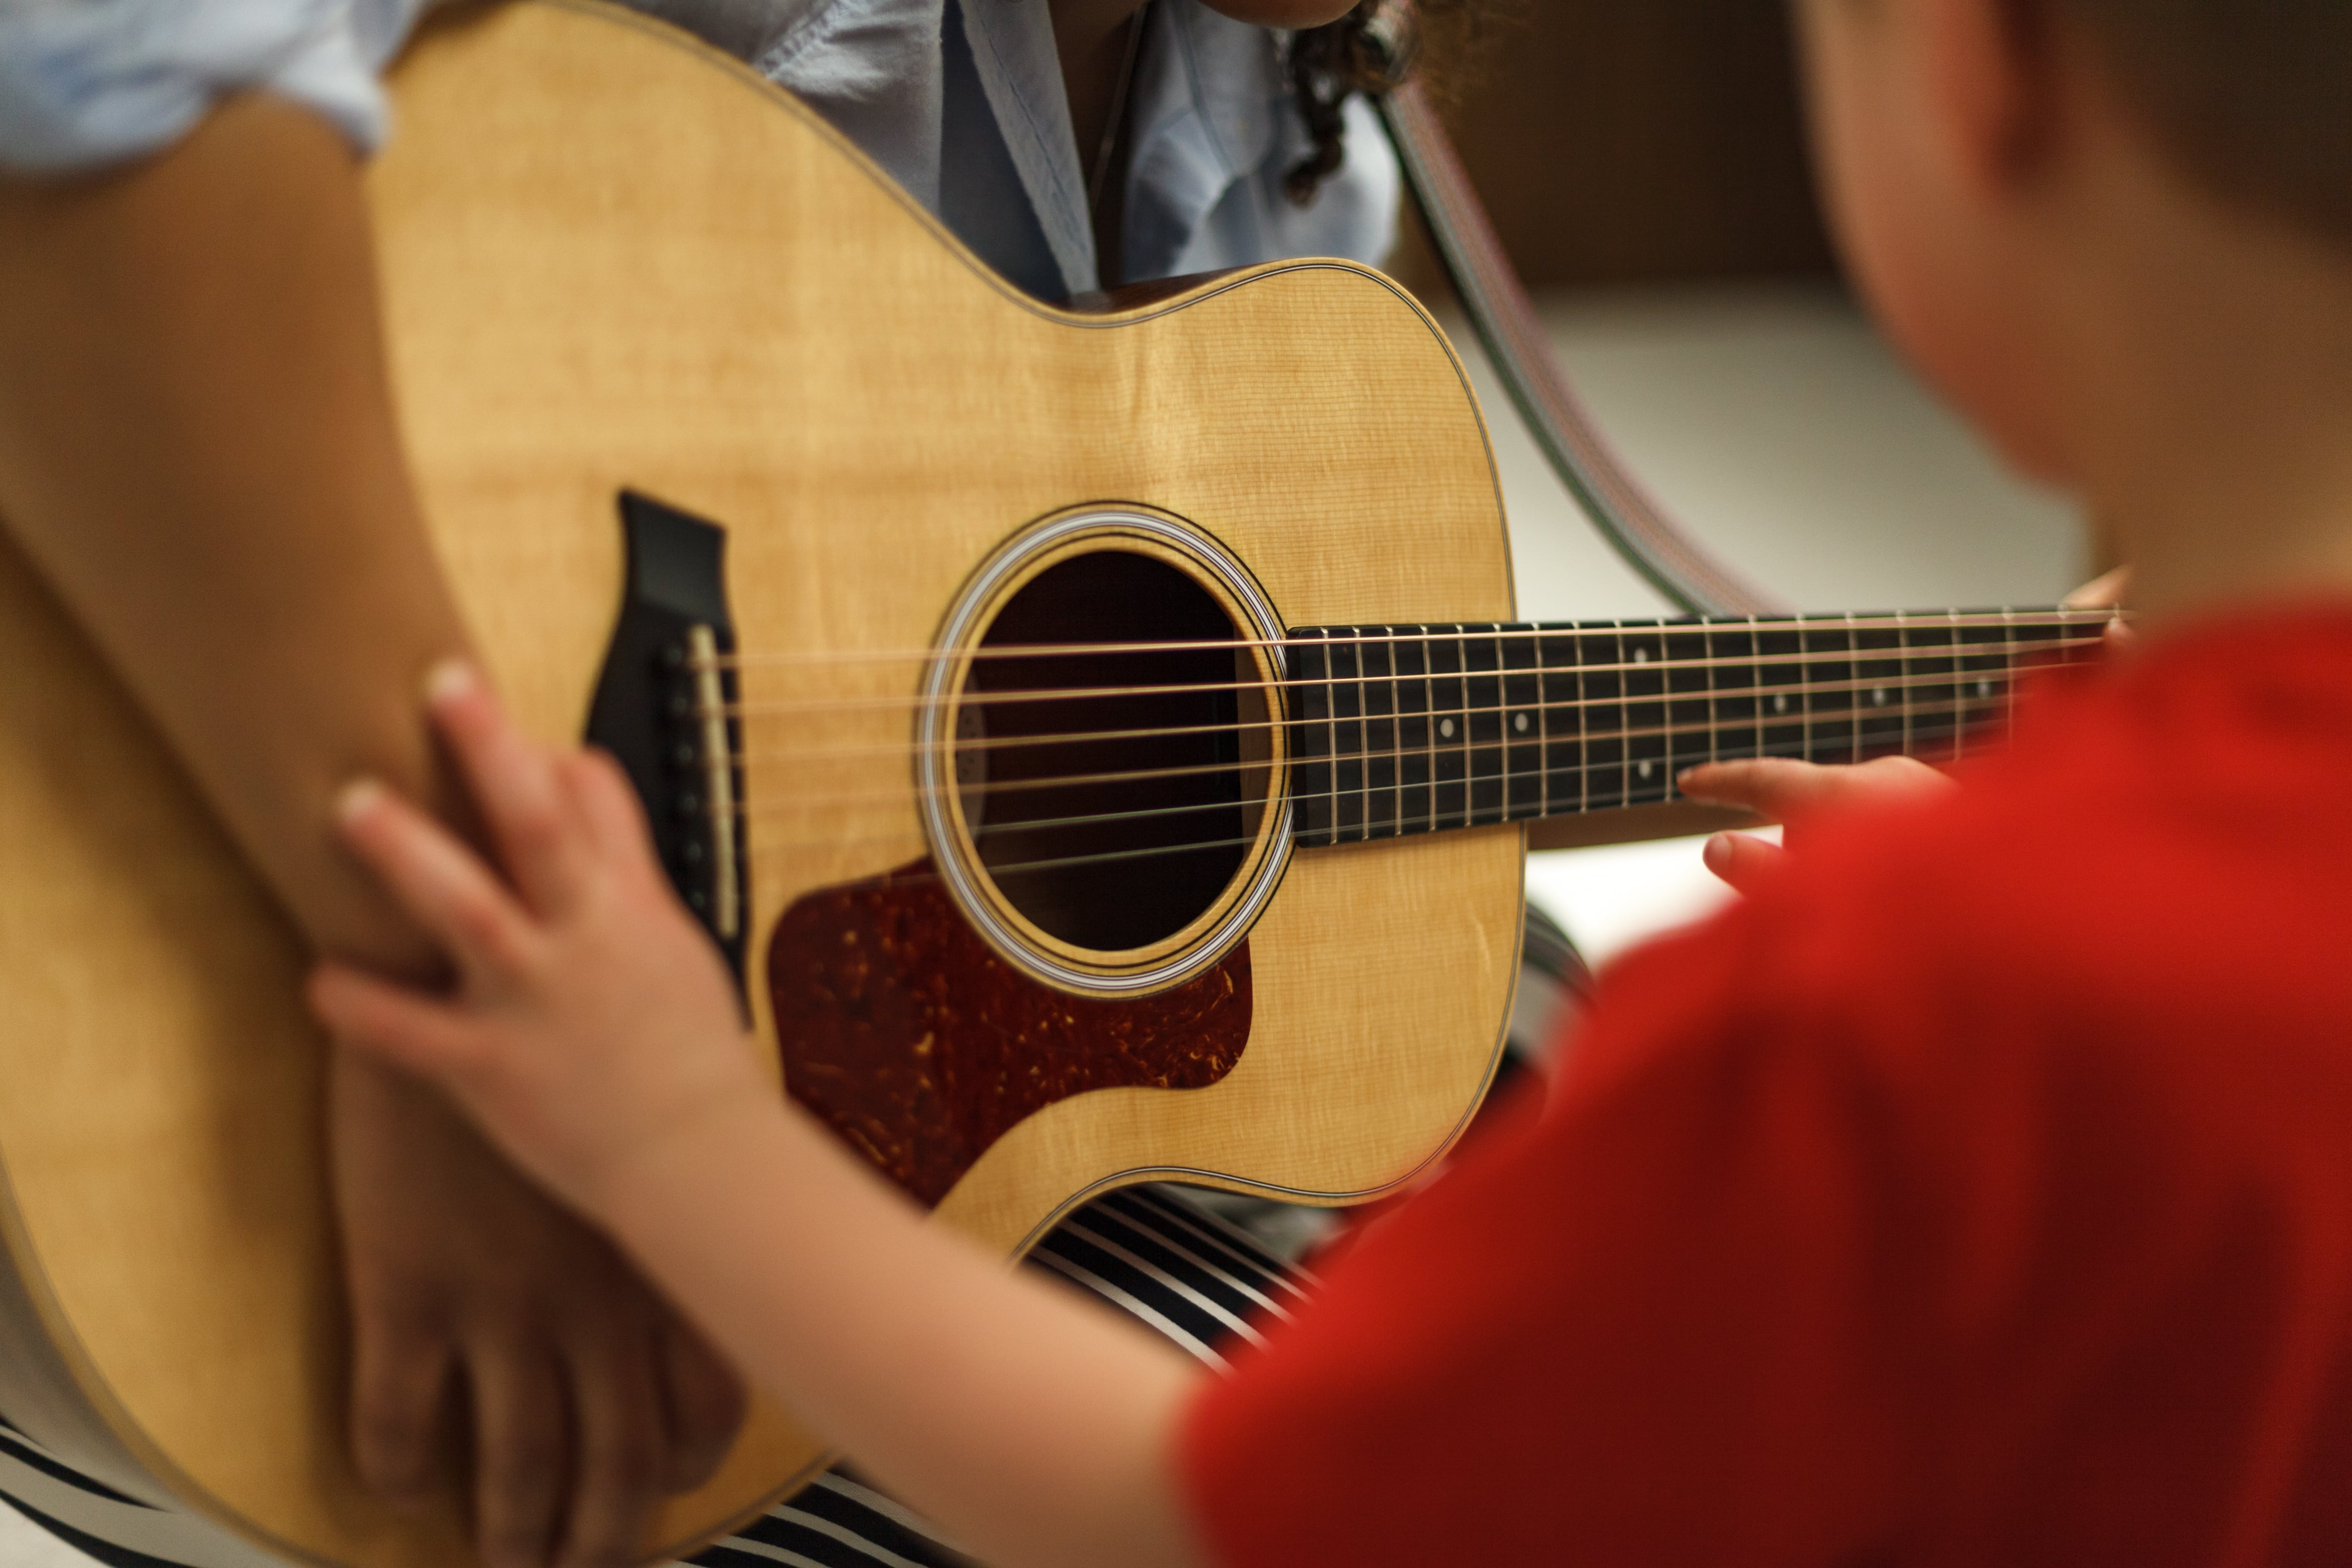 Hayley Francis Cann. Accredited Music Therapist. Find Your Voice Music Therapy. Kingston, Ontario. Youth. Children. Guitar.